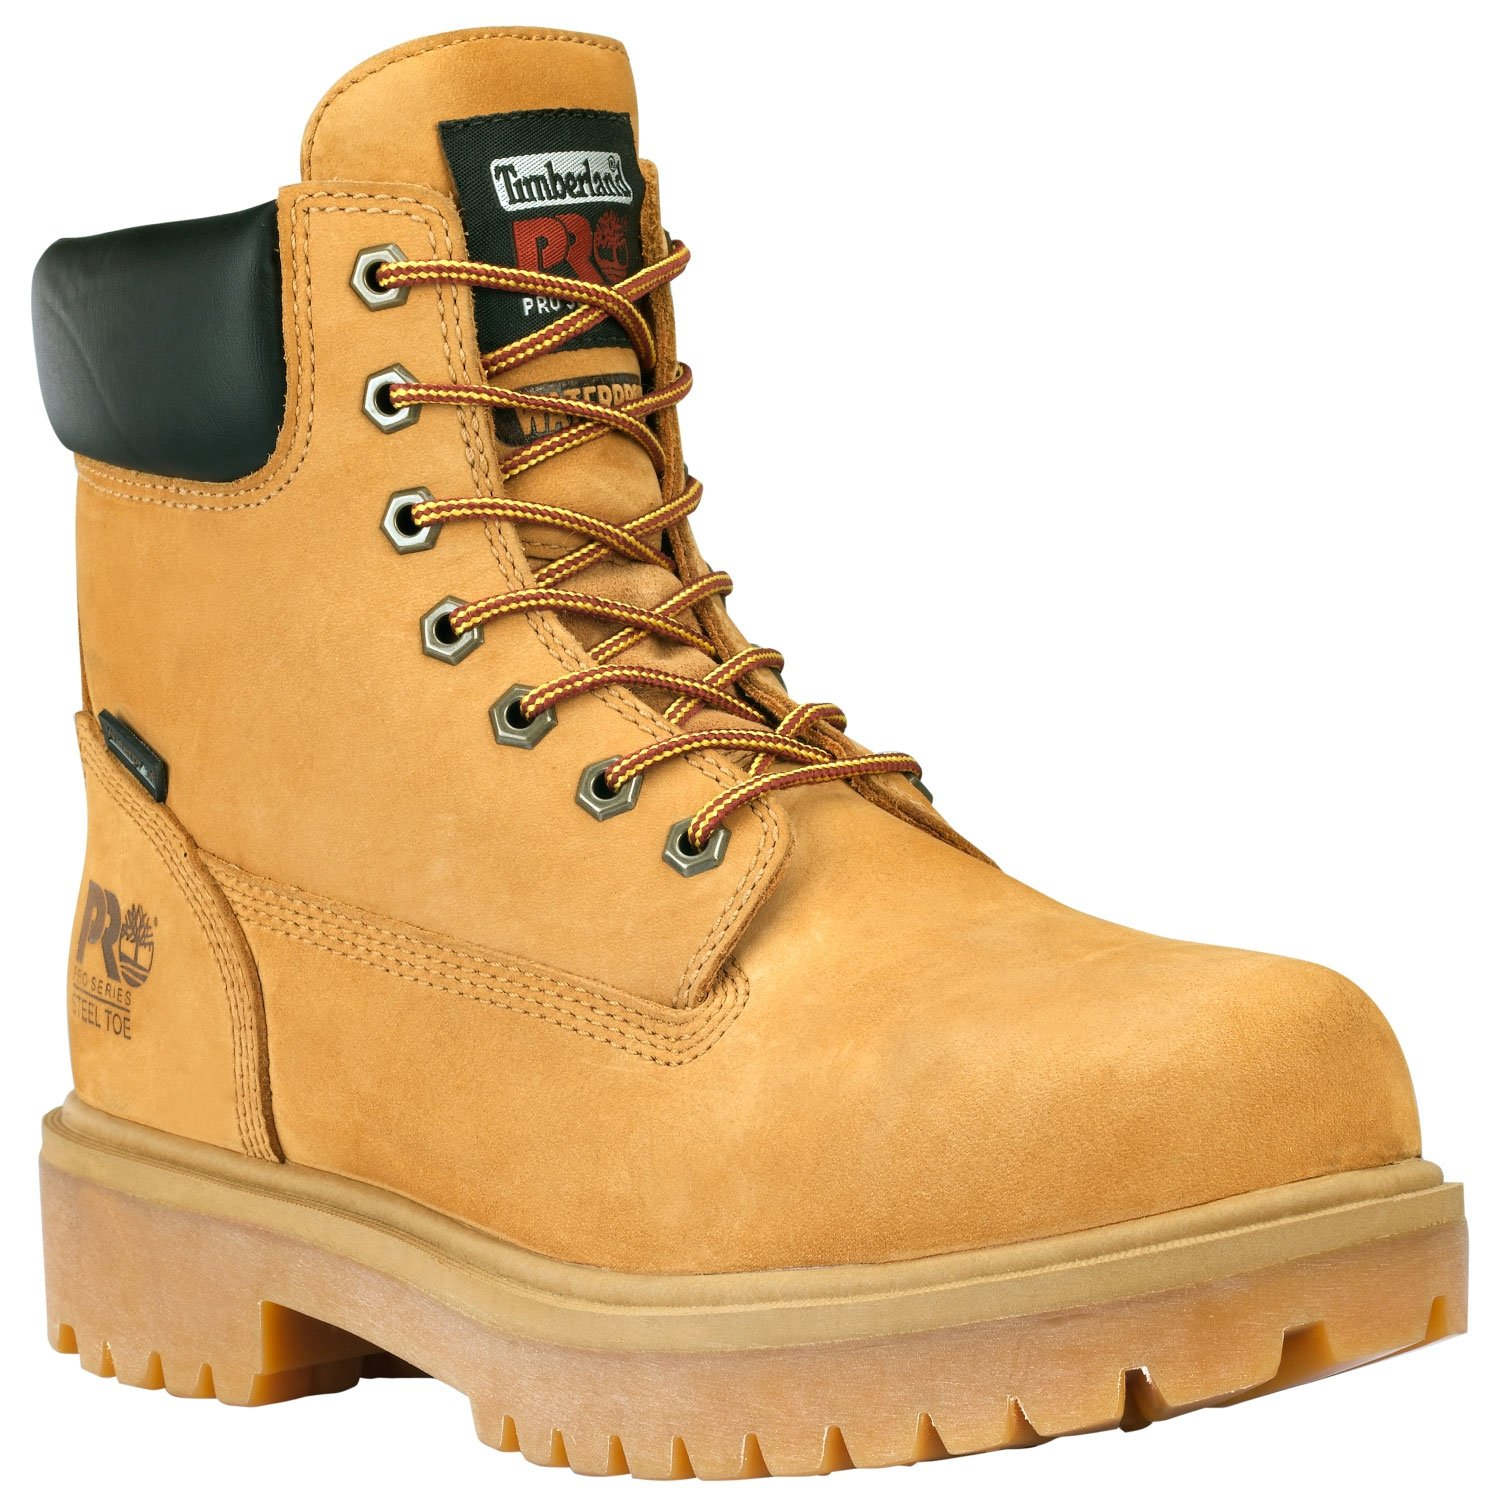 Timberland PRO 65016 Mens Direct Attach 6'' Steel Toe Boot (Wheat, 8 M US)